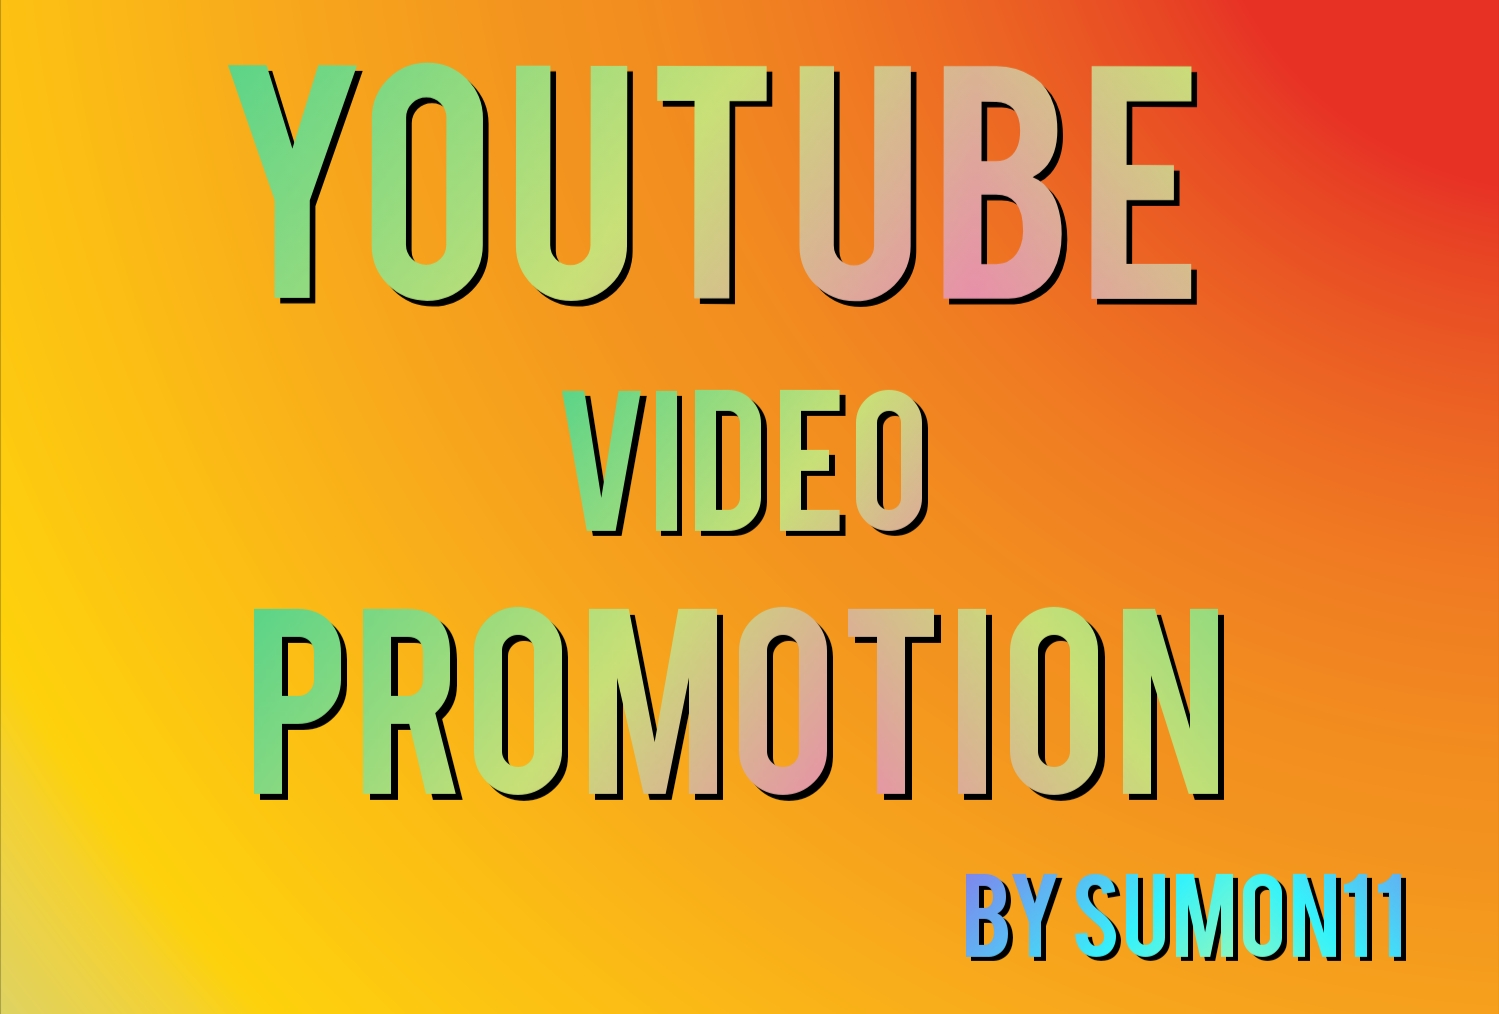 Youtube video promotion Social media marketing Fast delivery By Sumon11